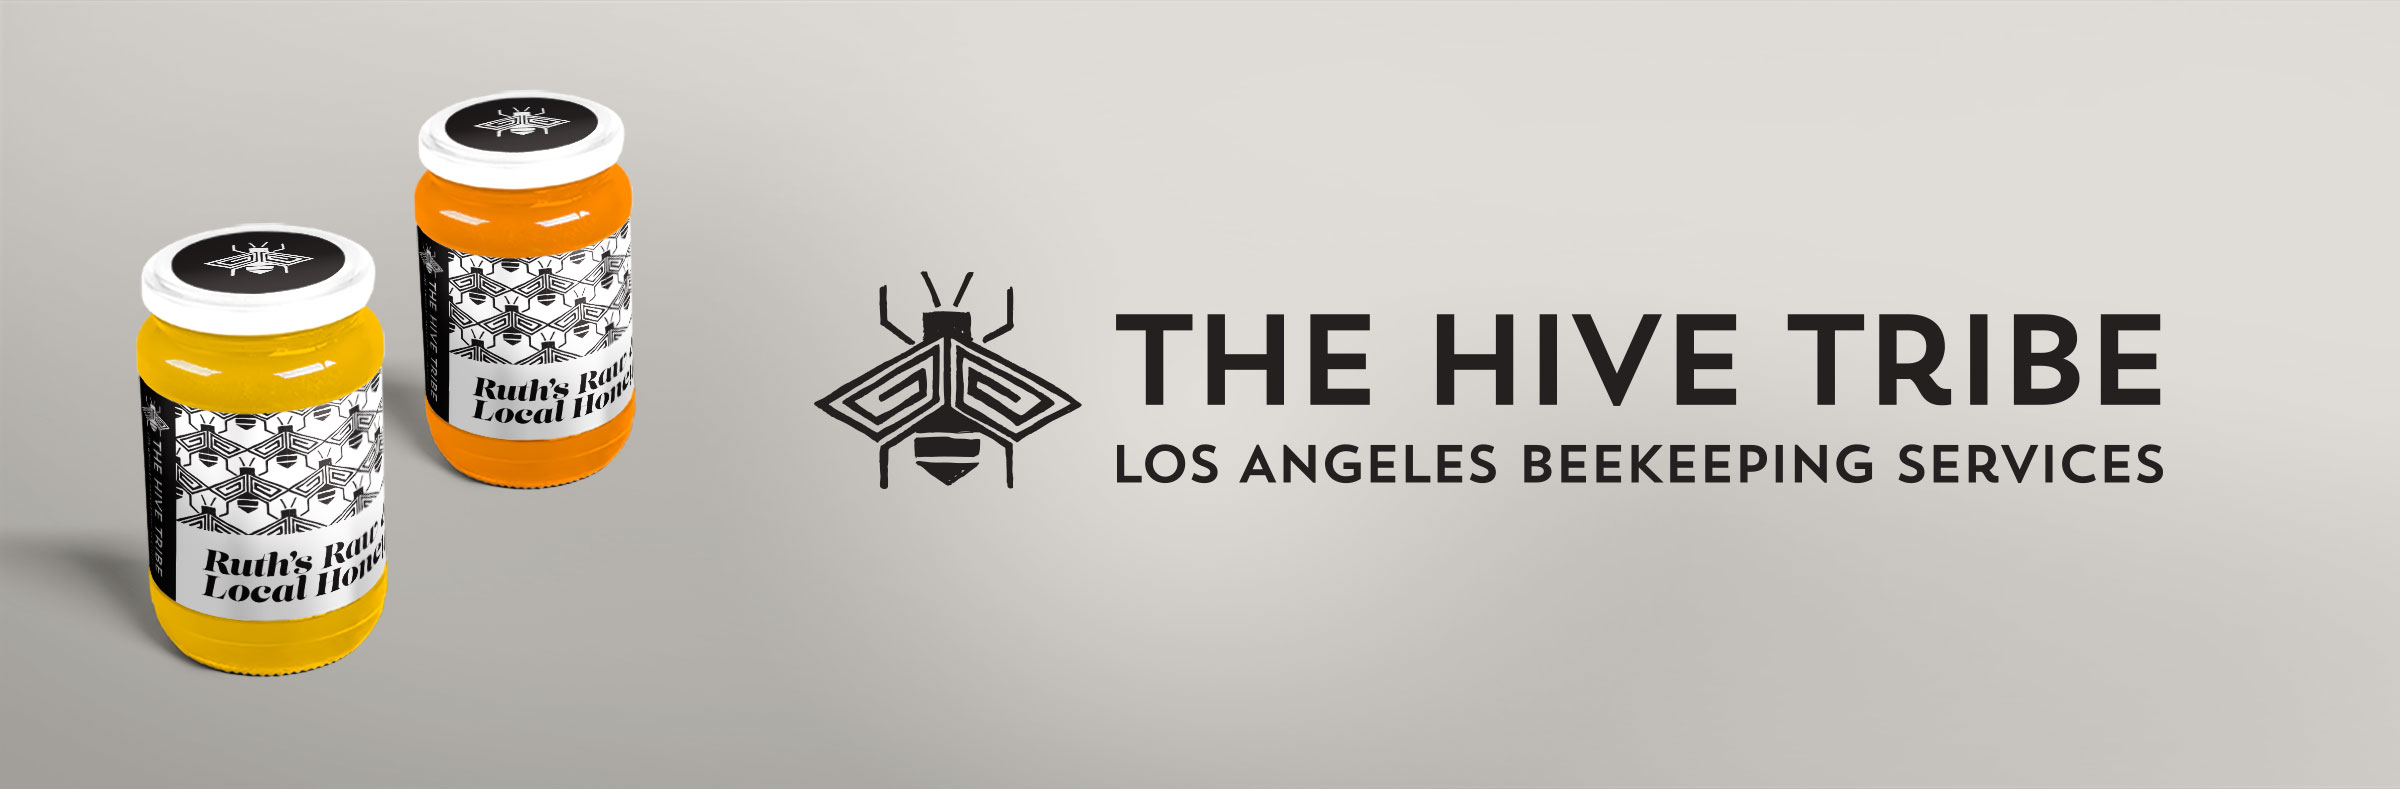 The Hive Tribe logo